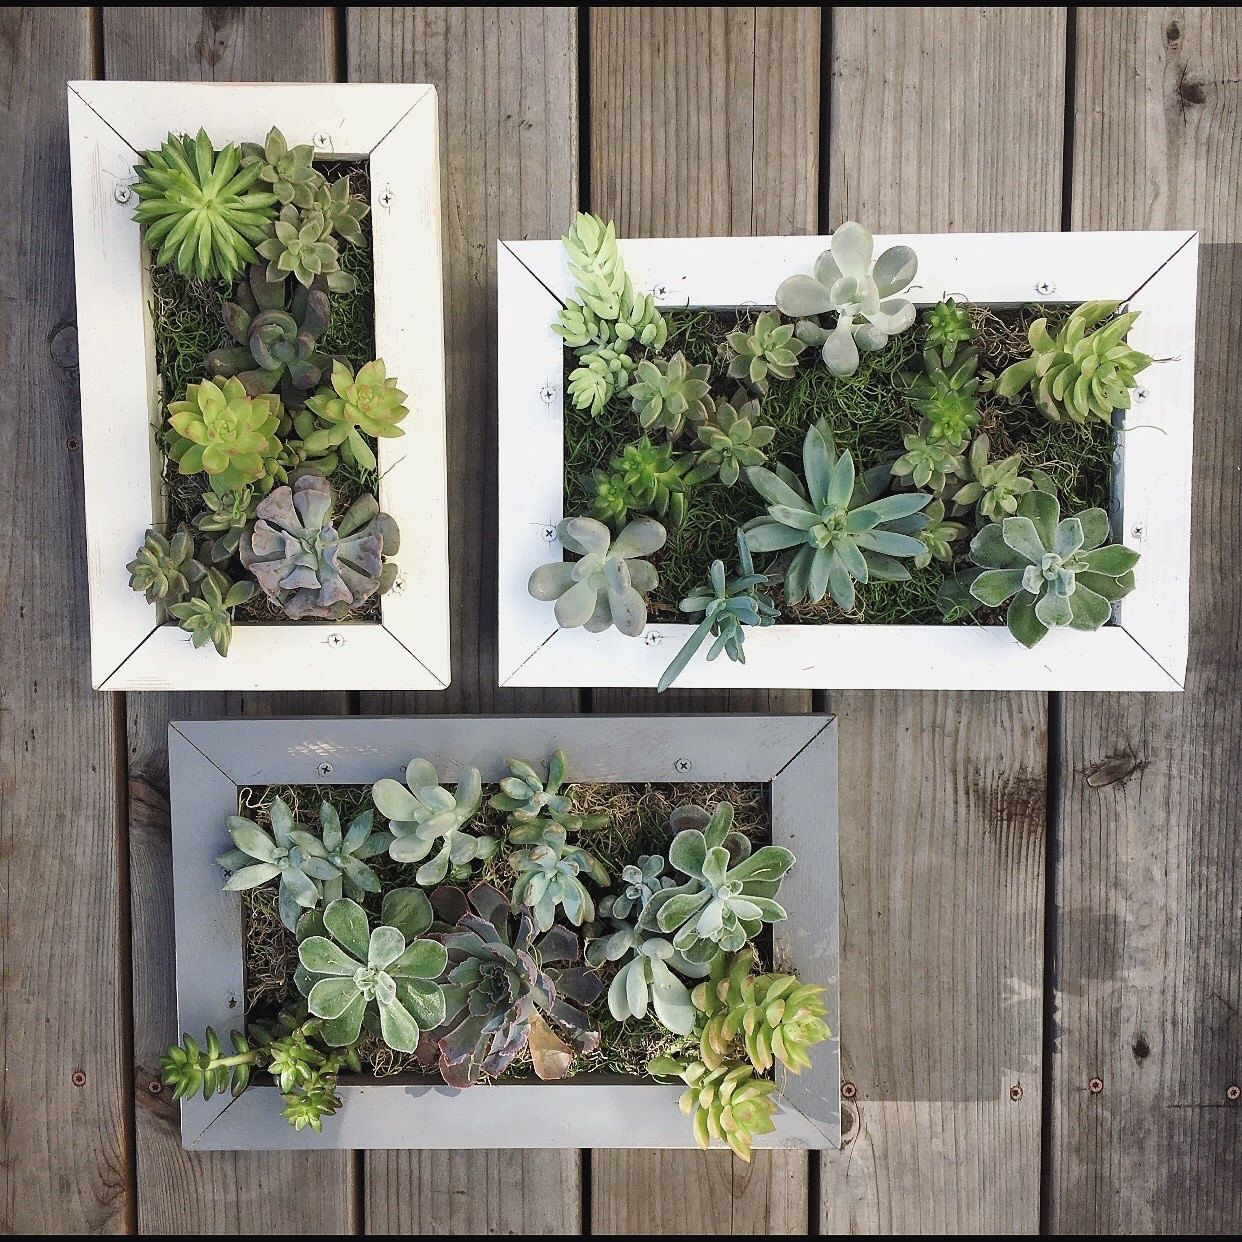 Hanging Living Wall Picture Frame Succulent Planter Box By Kelseygetskrafty On Etsy Https Www Etsy Succulent Wall Planter Wall Planters Indoor Succulent Wall